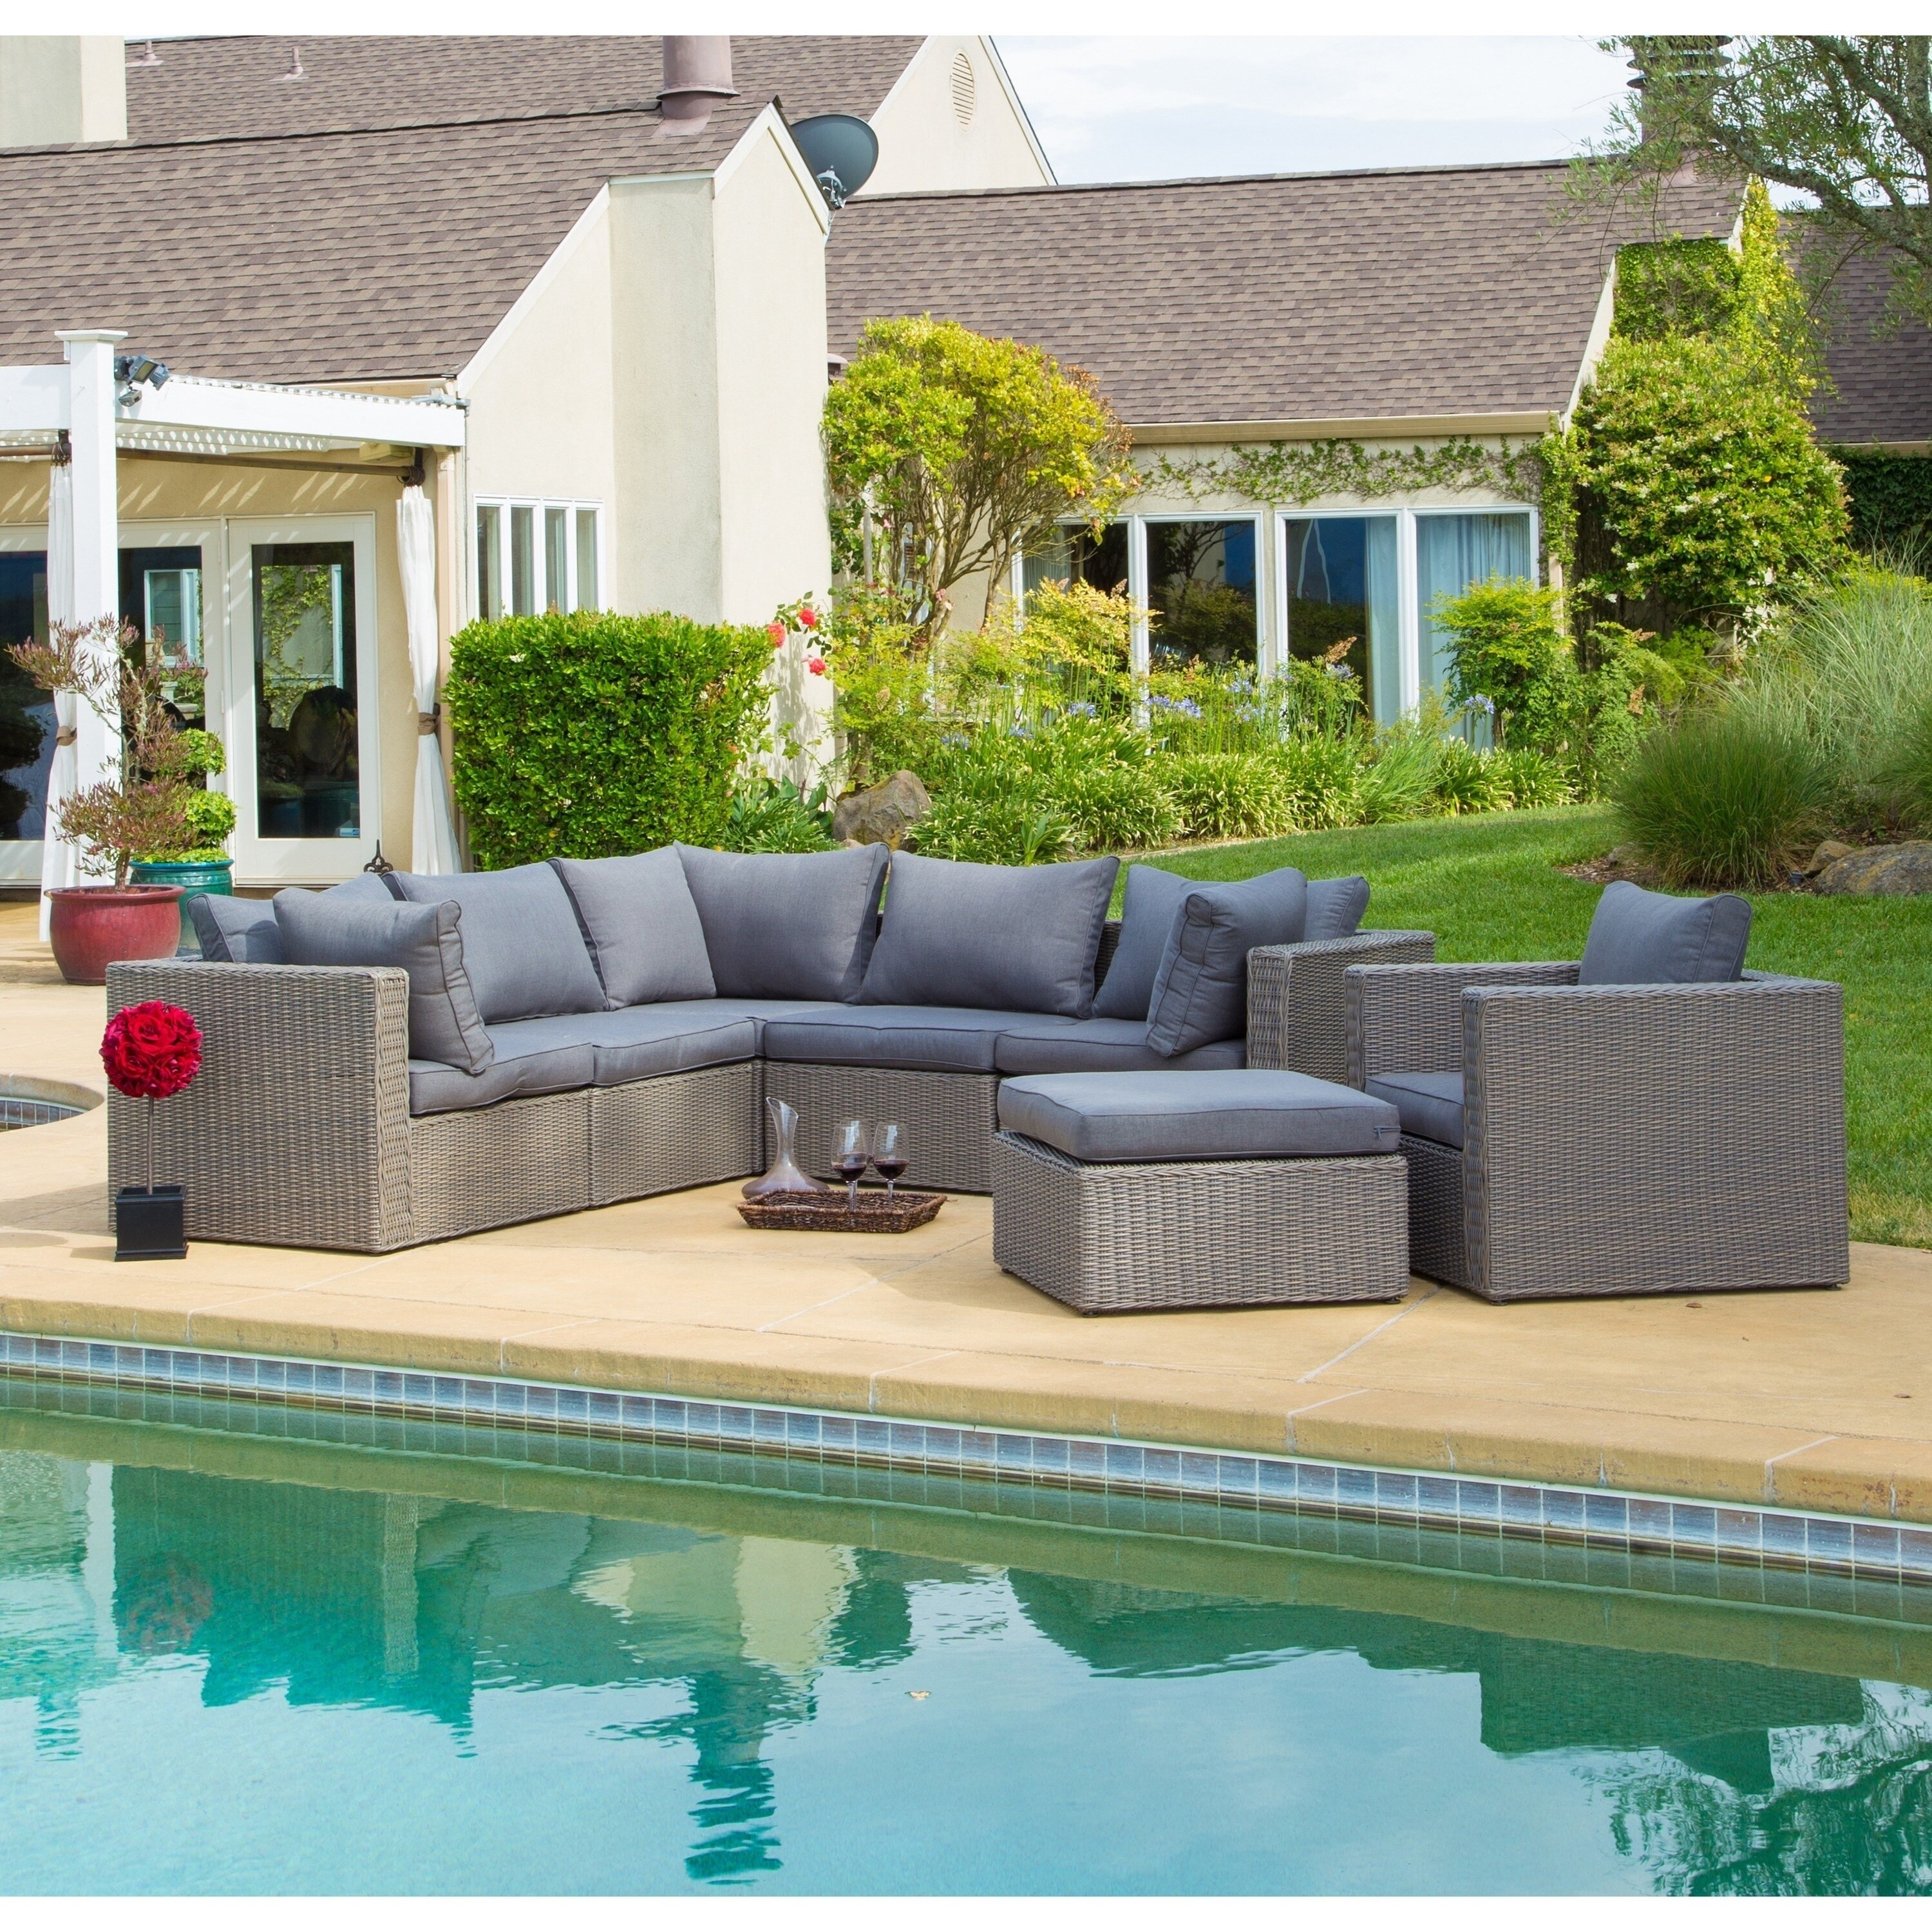 Shop Corvus Sevilla 7 Piece Outdoor Wicker Furniture Set With Cushions    Free Shipping Today   Overstock.com   13059274